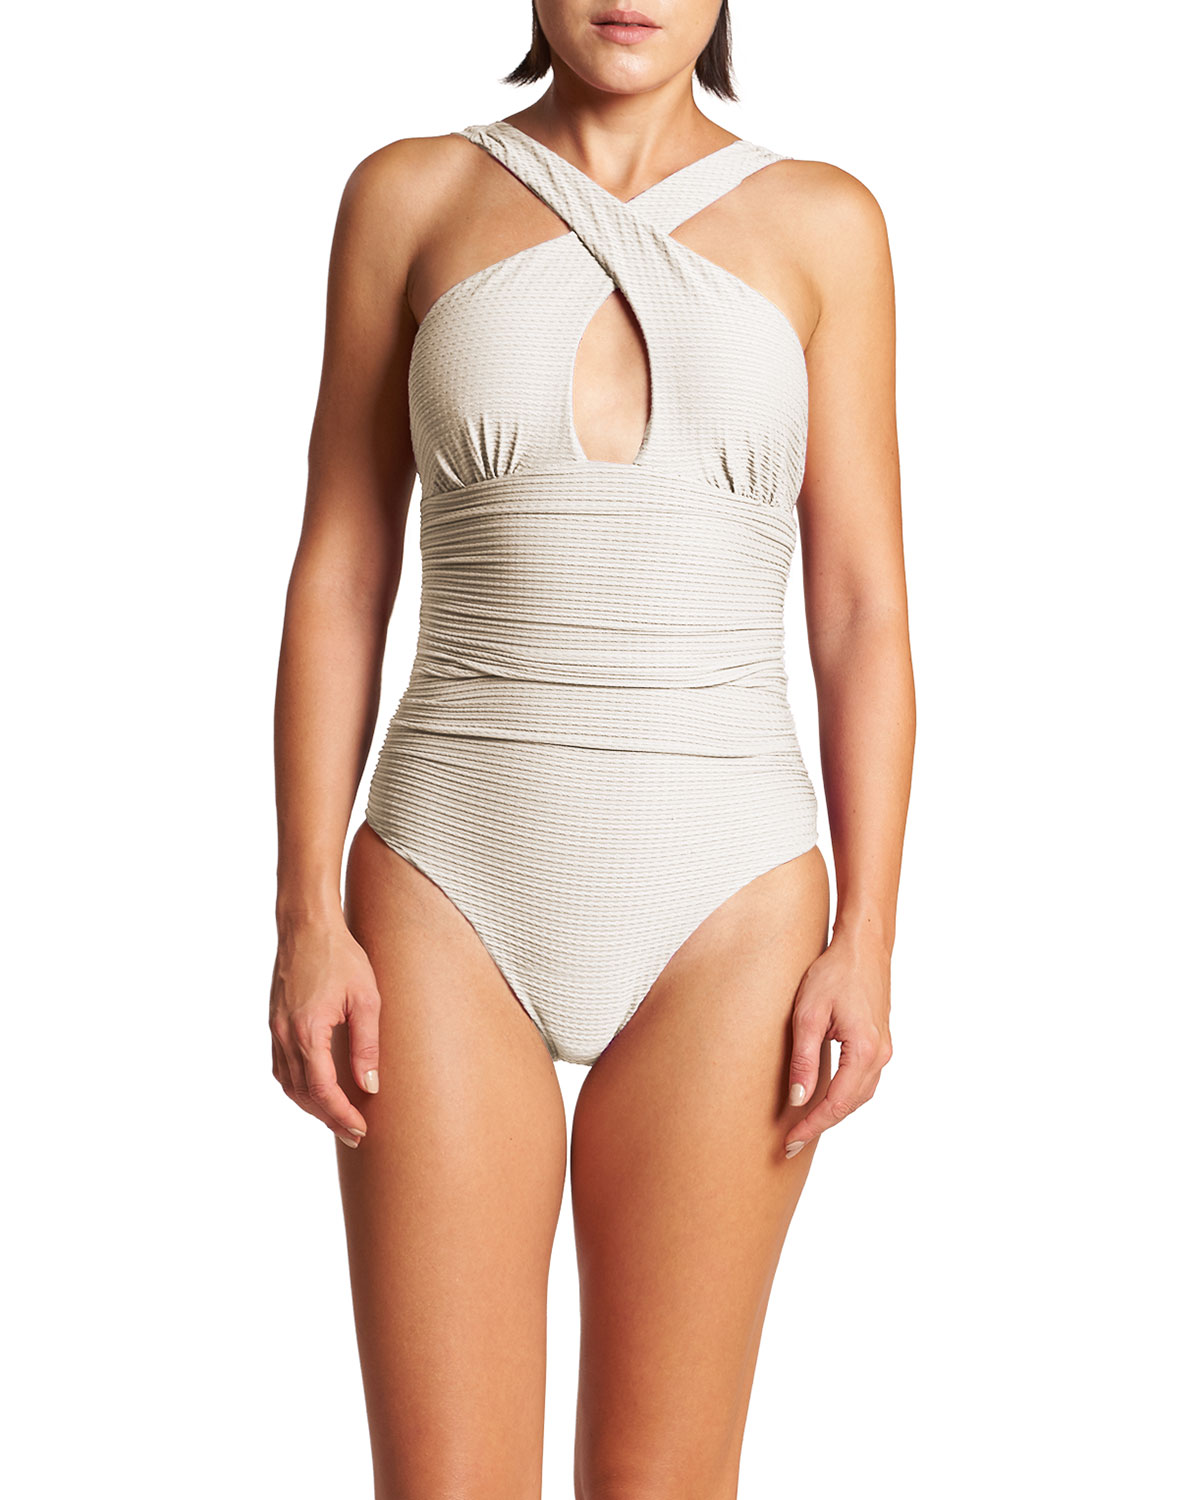 Minerva Shimmer One-Piece Swimsuit